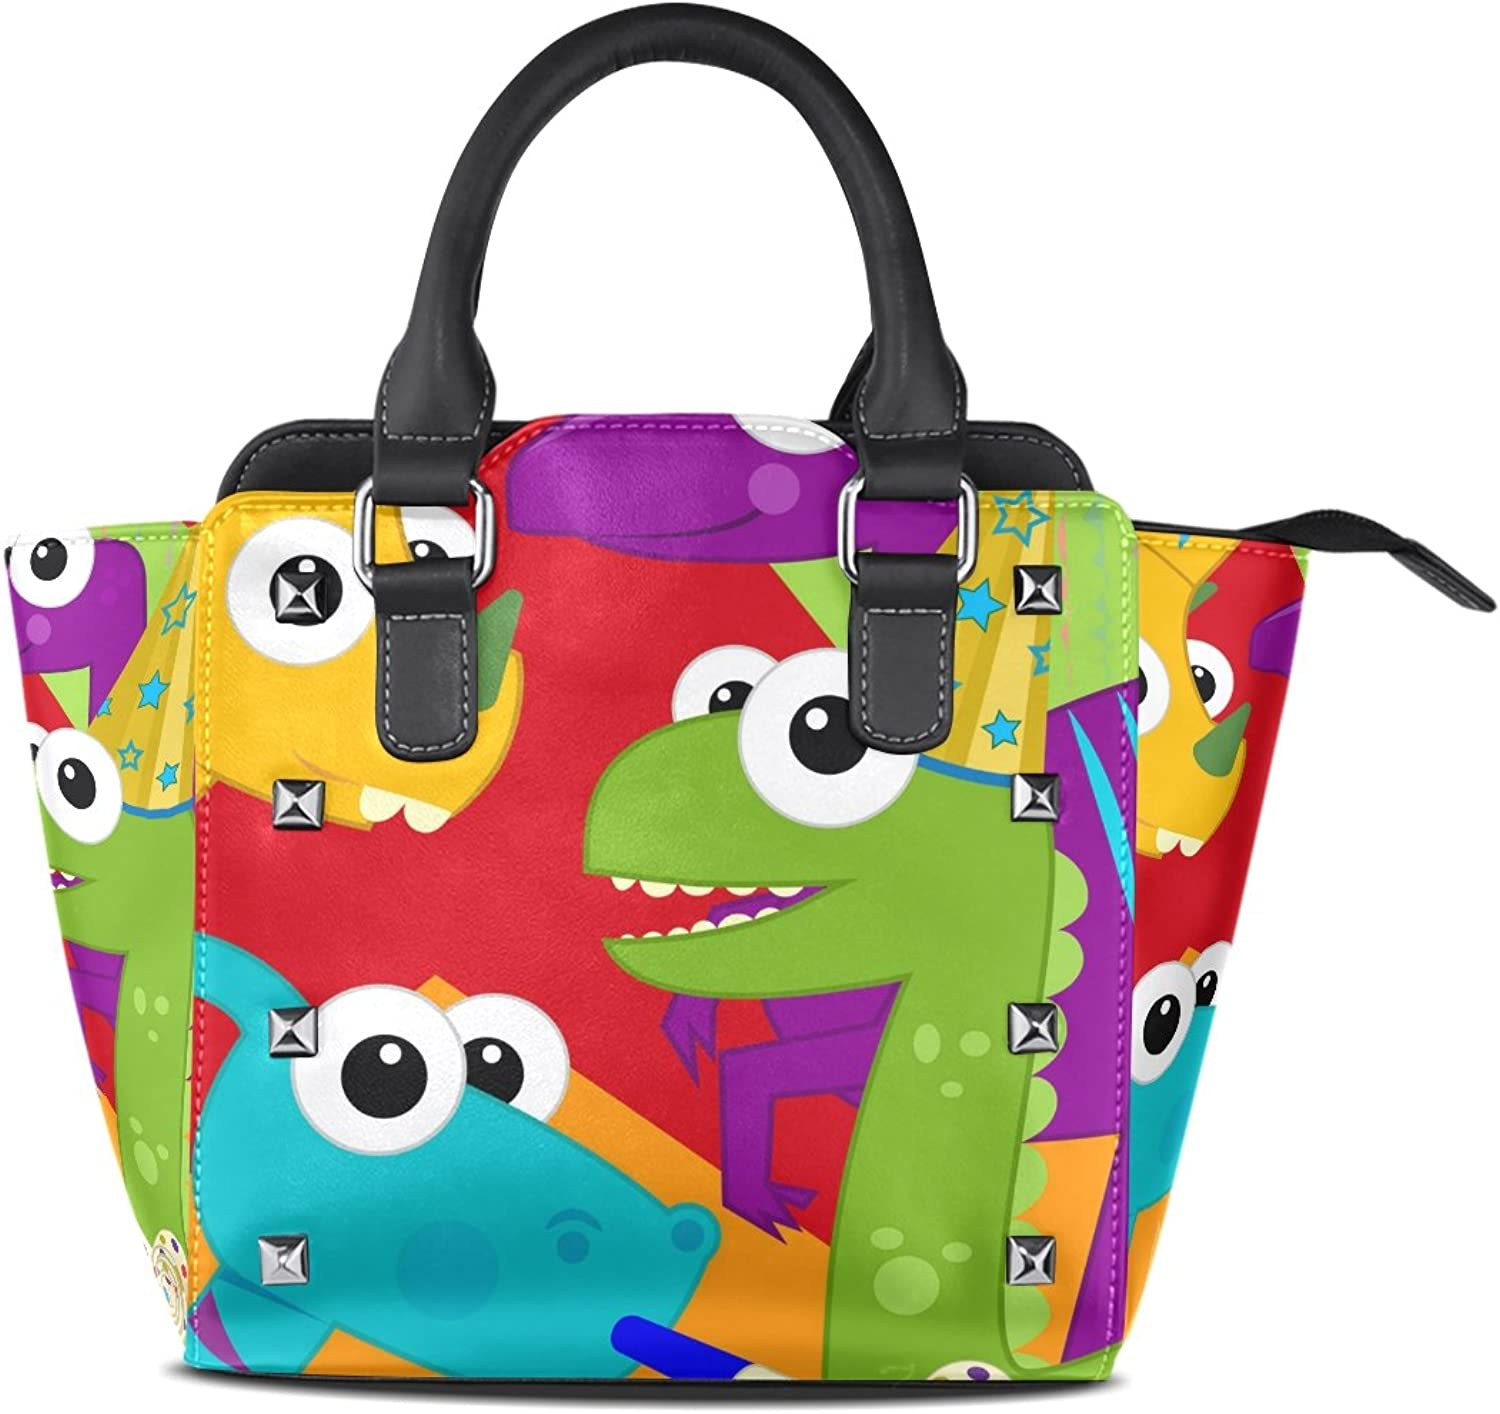 My Little Nest Women's Top Handle Satchel Handbag colorful Dinosaur Birthday Ladies PU Leather Shoulder Bag Crossbody Bag